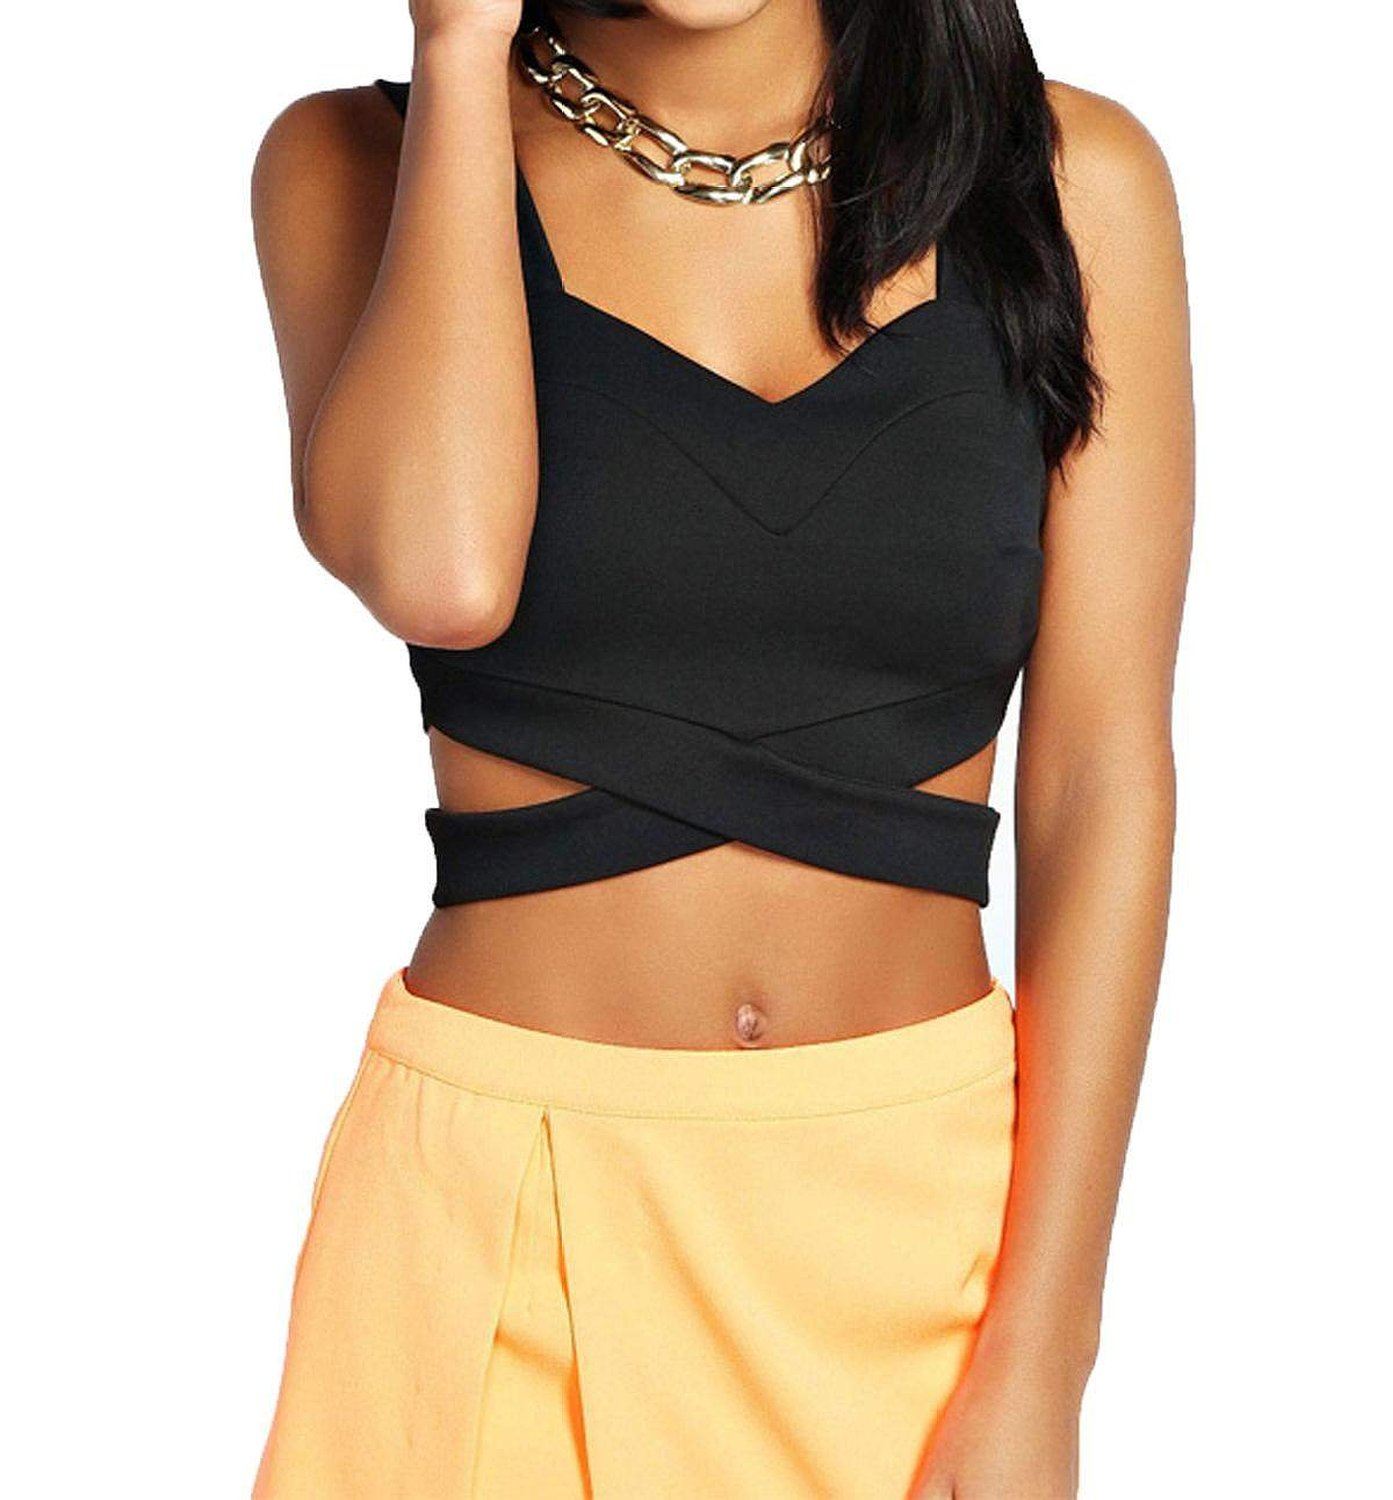 Zeagoo Women Sleeveless Slim Fitting Sexy Casual Bralet Strap Crop Tops Vest at Amazon Women's Clothing store: